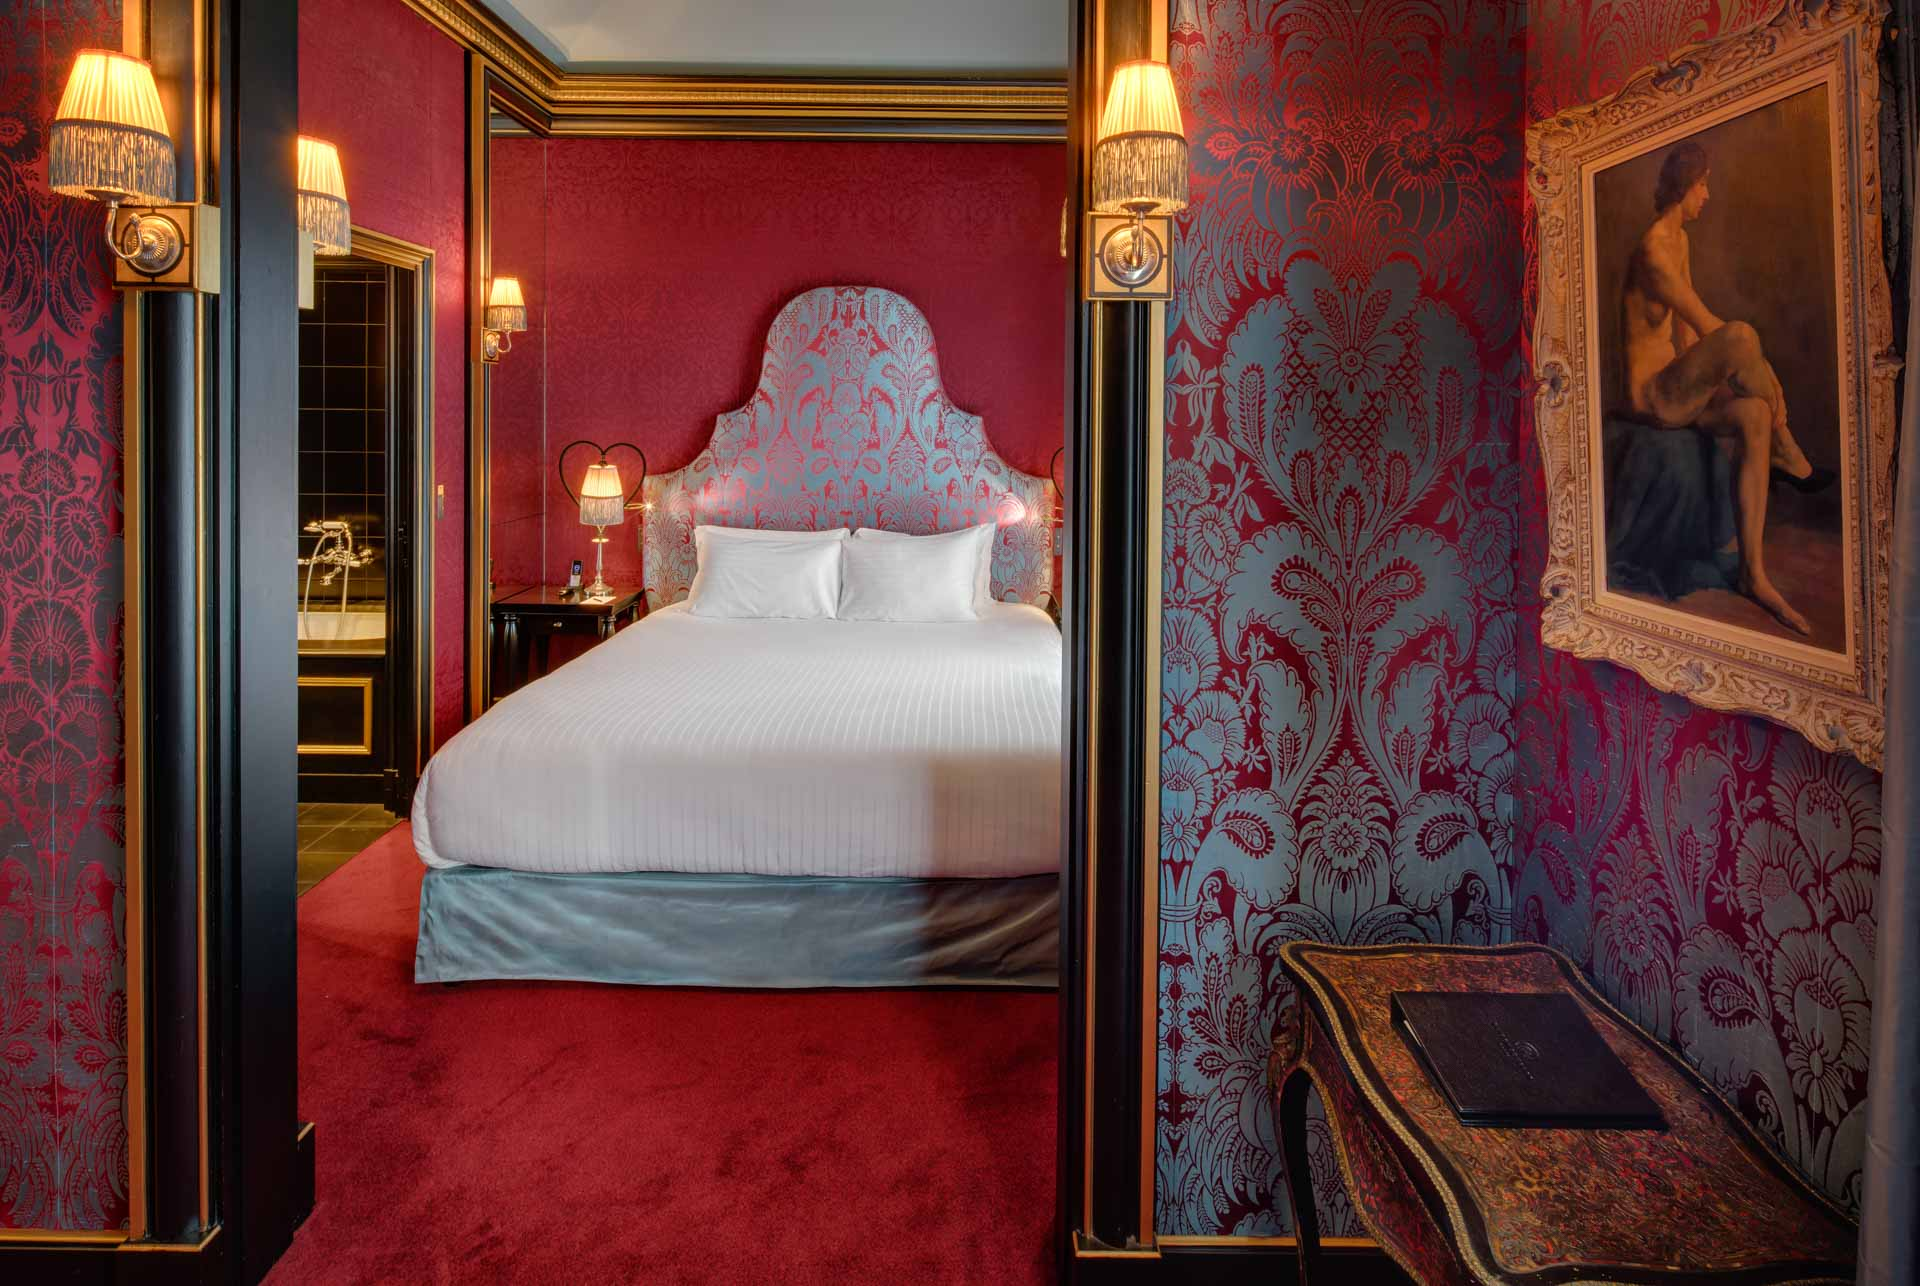 Luxury boutique hotel maison souquet paris jan prerovsky for Maison paris